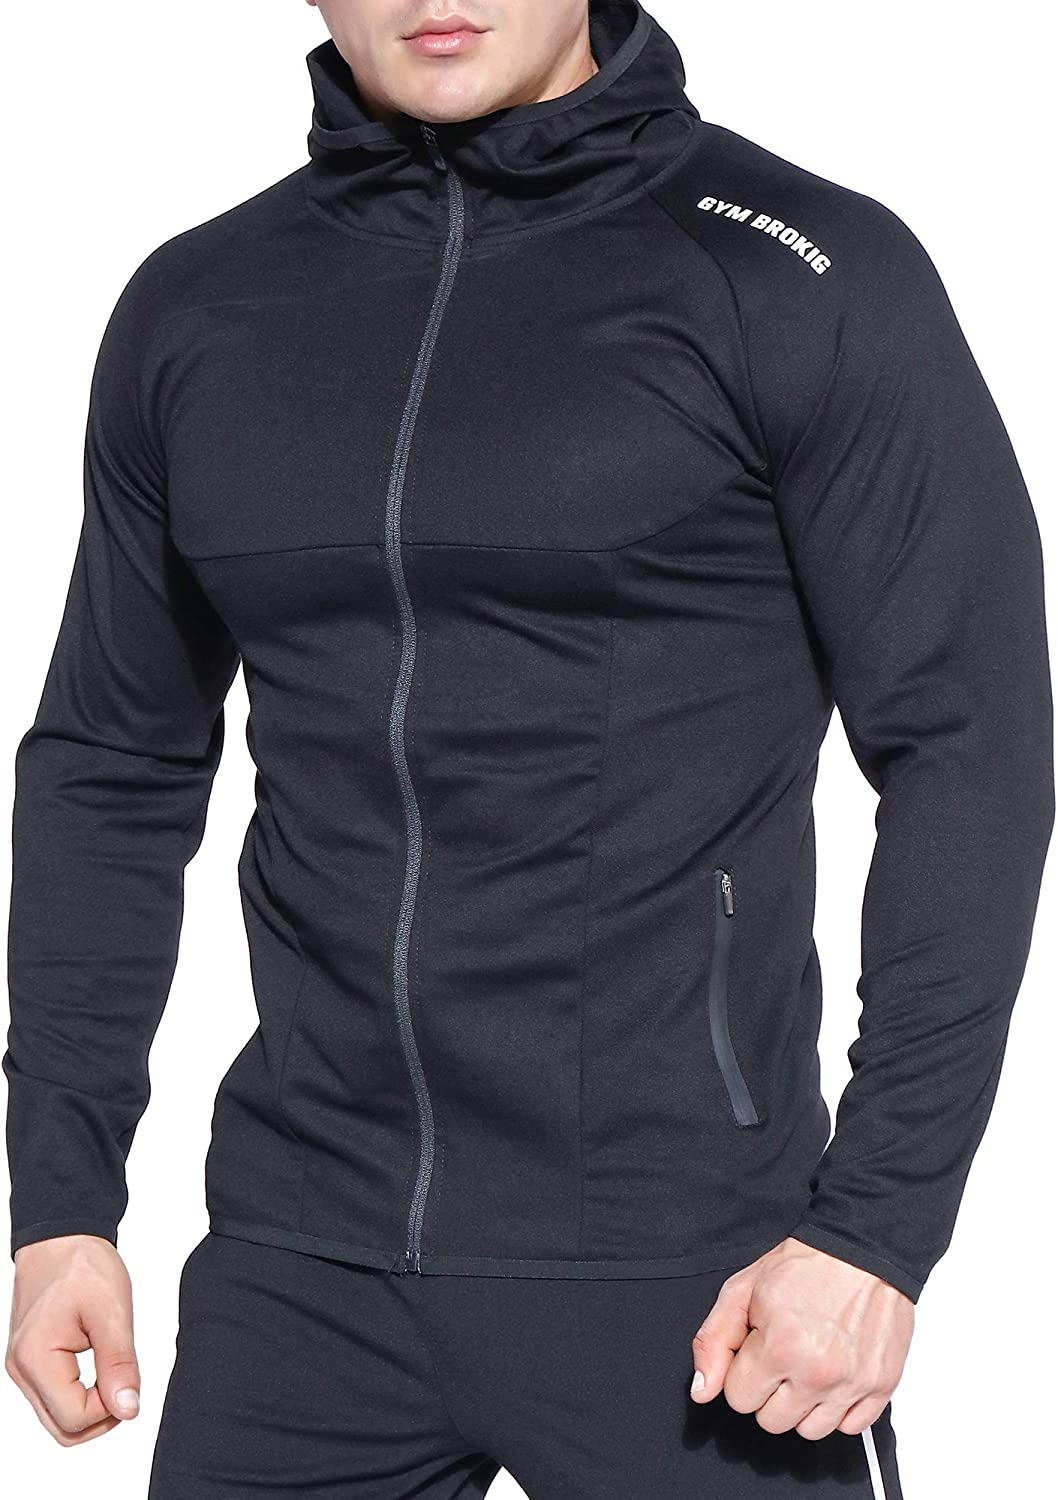 BROKIG Men's Gym Muscle Hoodie Full Zip Up Workout Running Sweatshirts Zipper Pockets